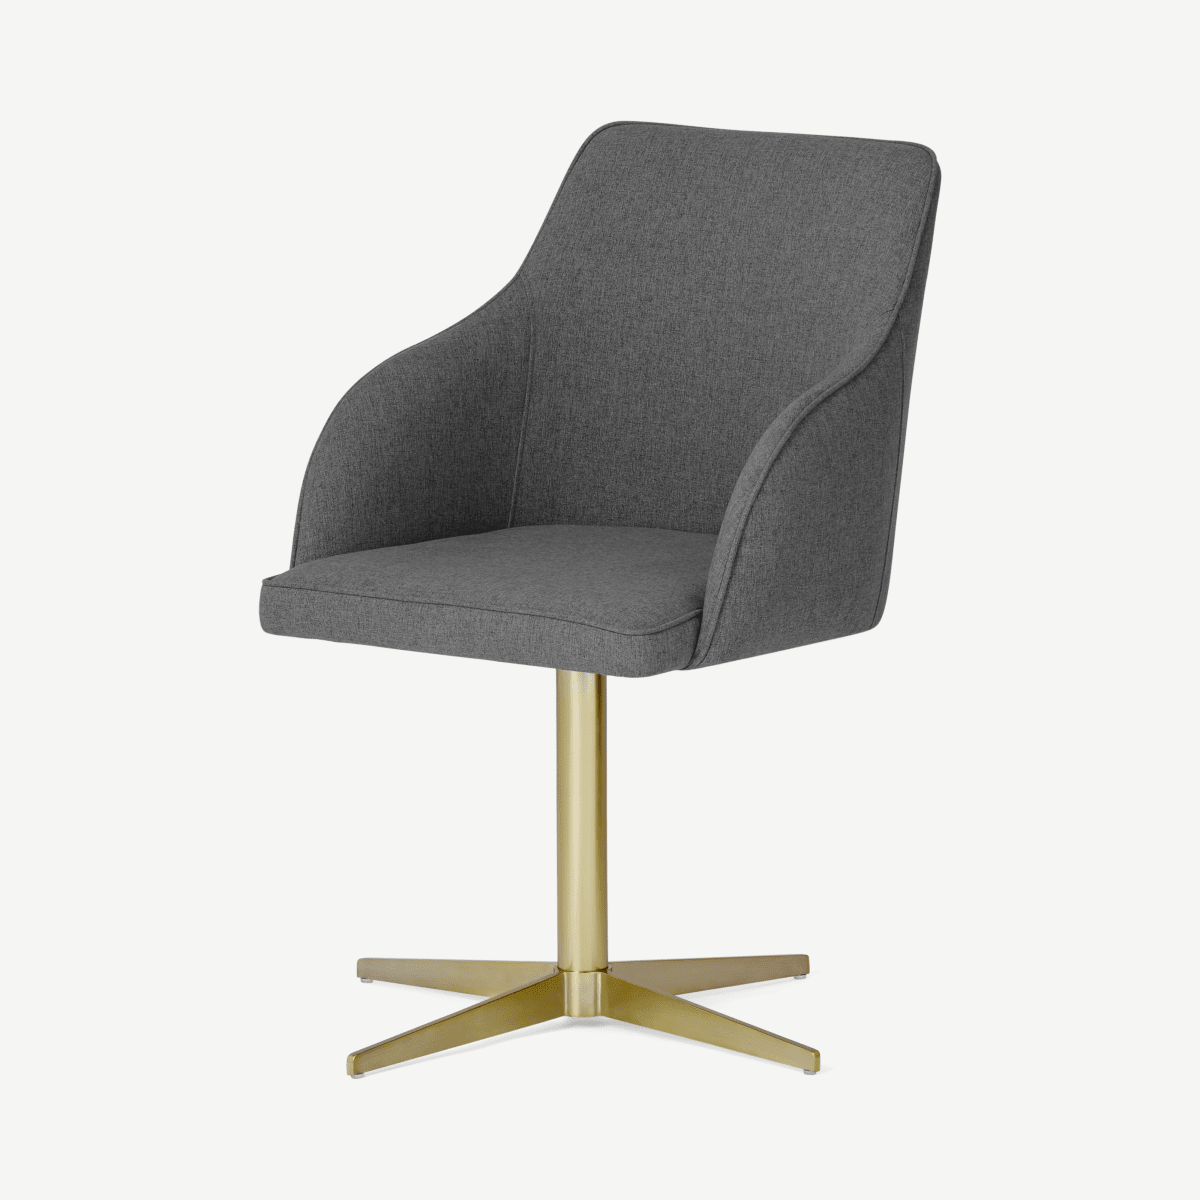 Keira Office Chair, Marl Grey & Brass